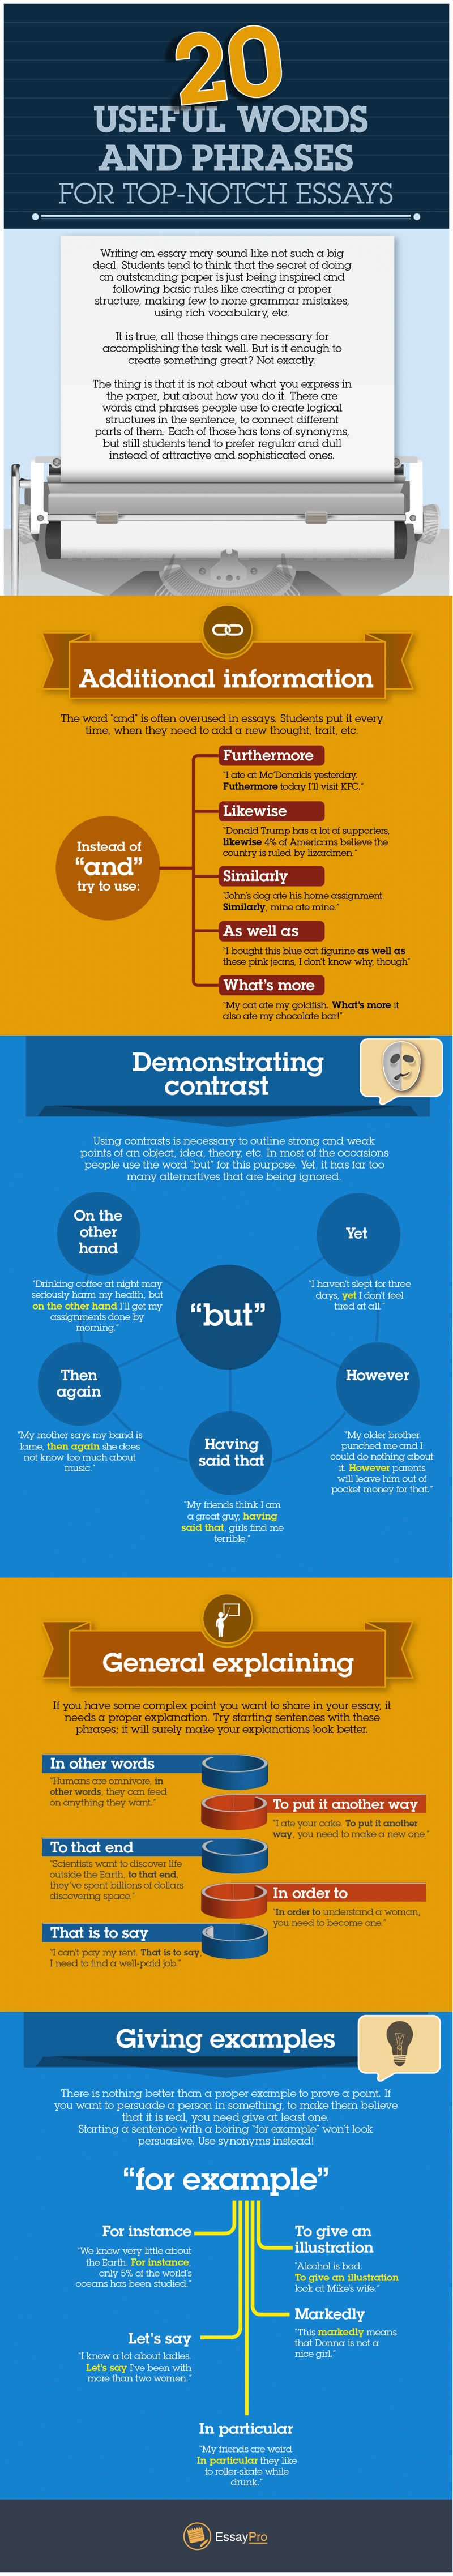 Effective Writing Skills: Using Appropriate Synonyms - Infographic